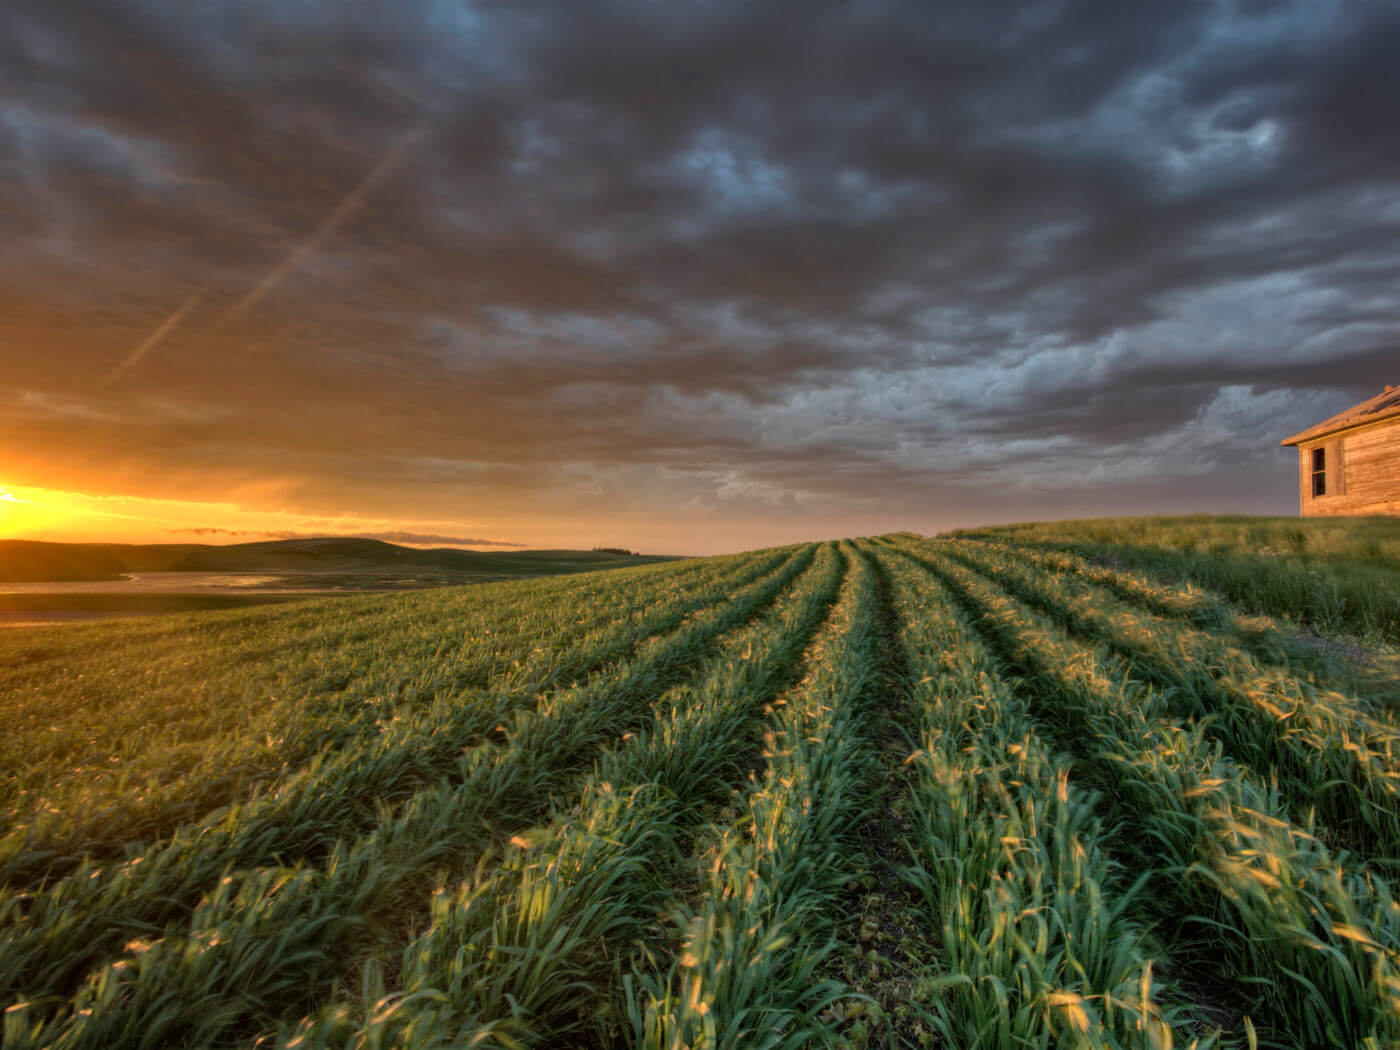 sunset and durum wheat crop storm clouds